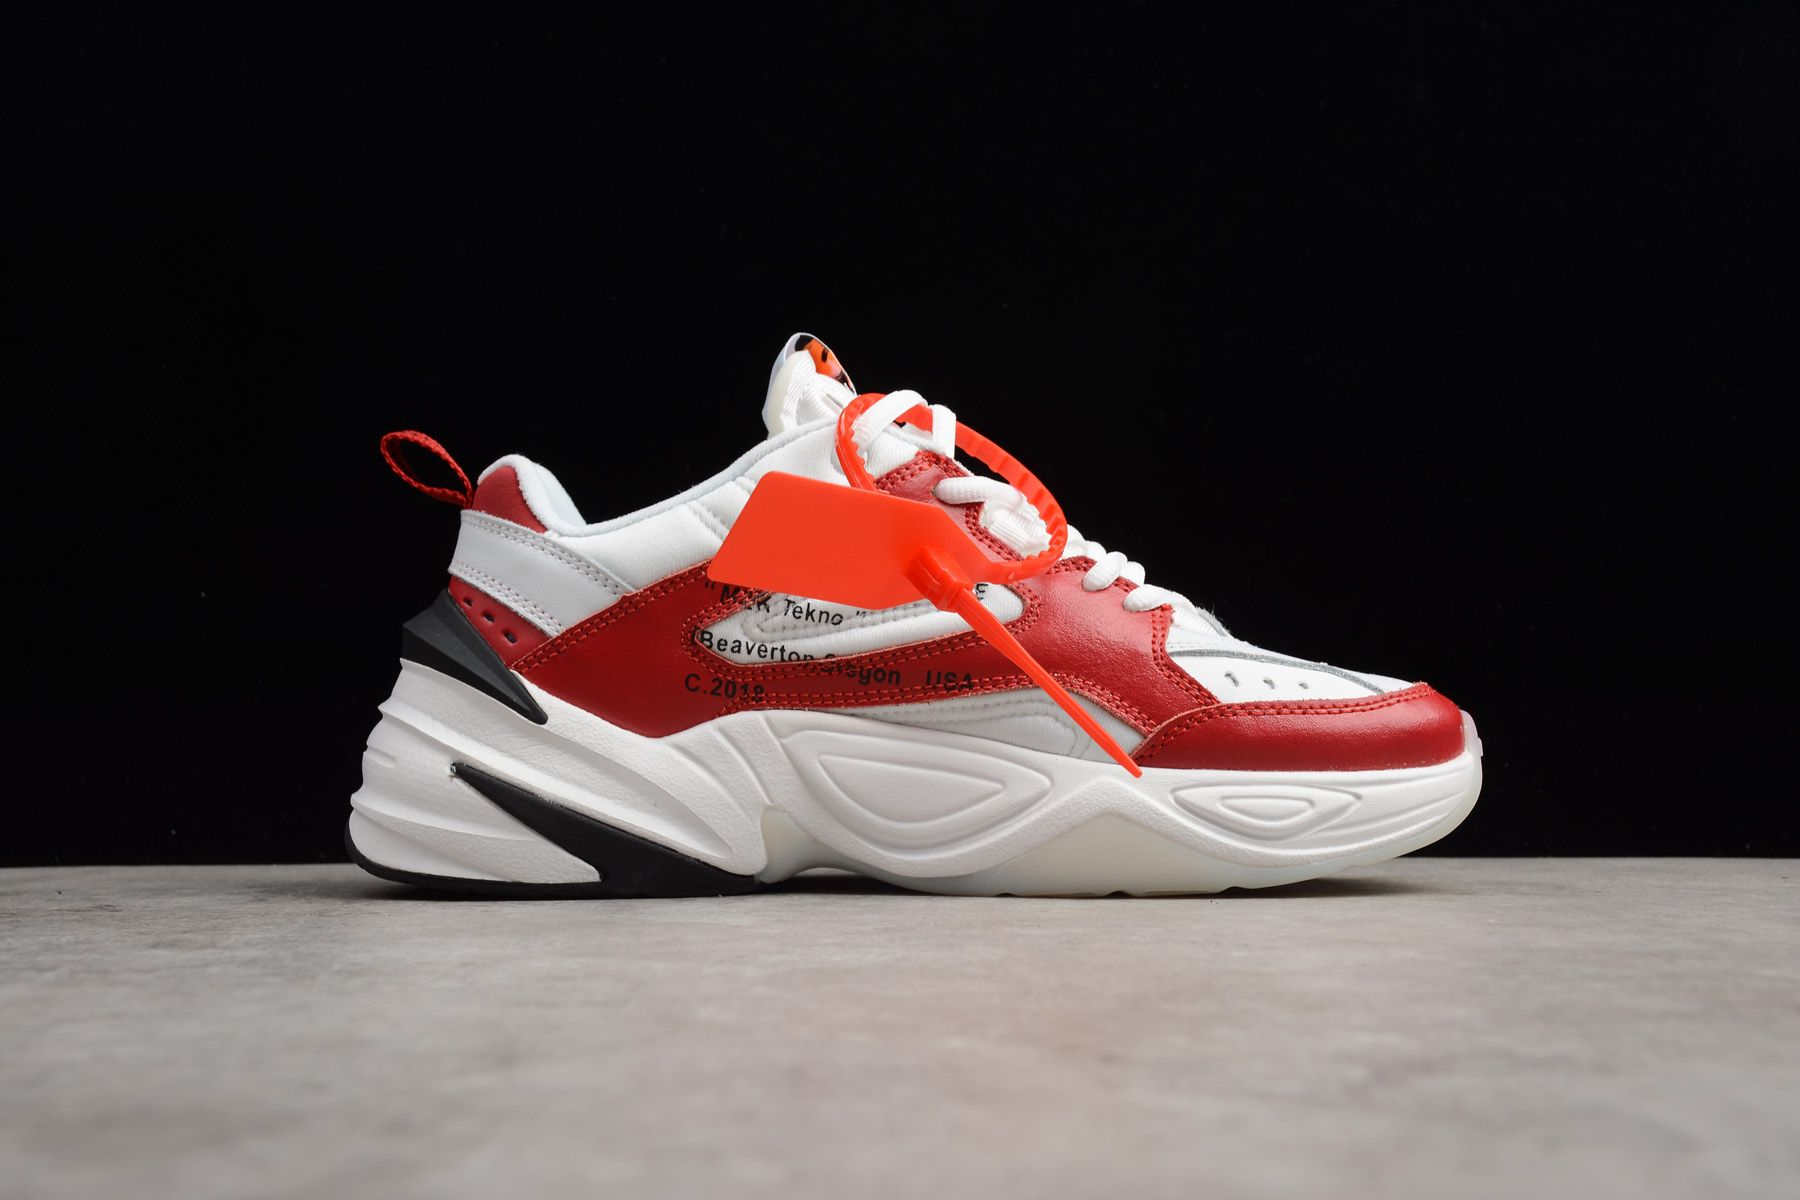 quality design 5ef7c 669d5 Latest OFF-WHITE x Nike M2K Tekno Red White Black A03108-060